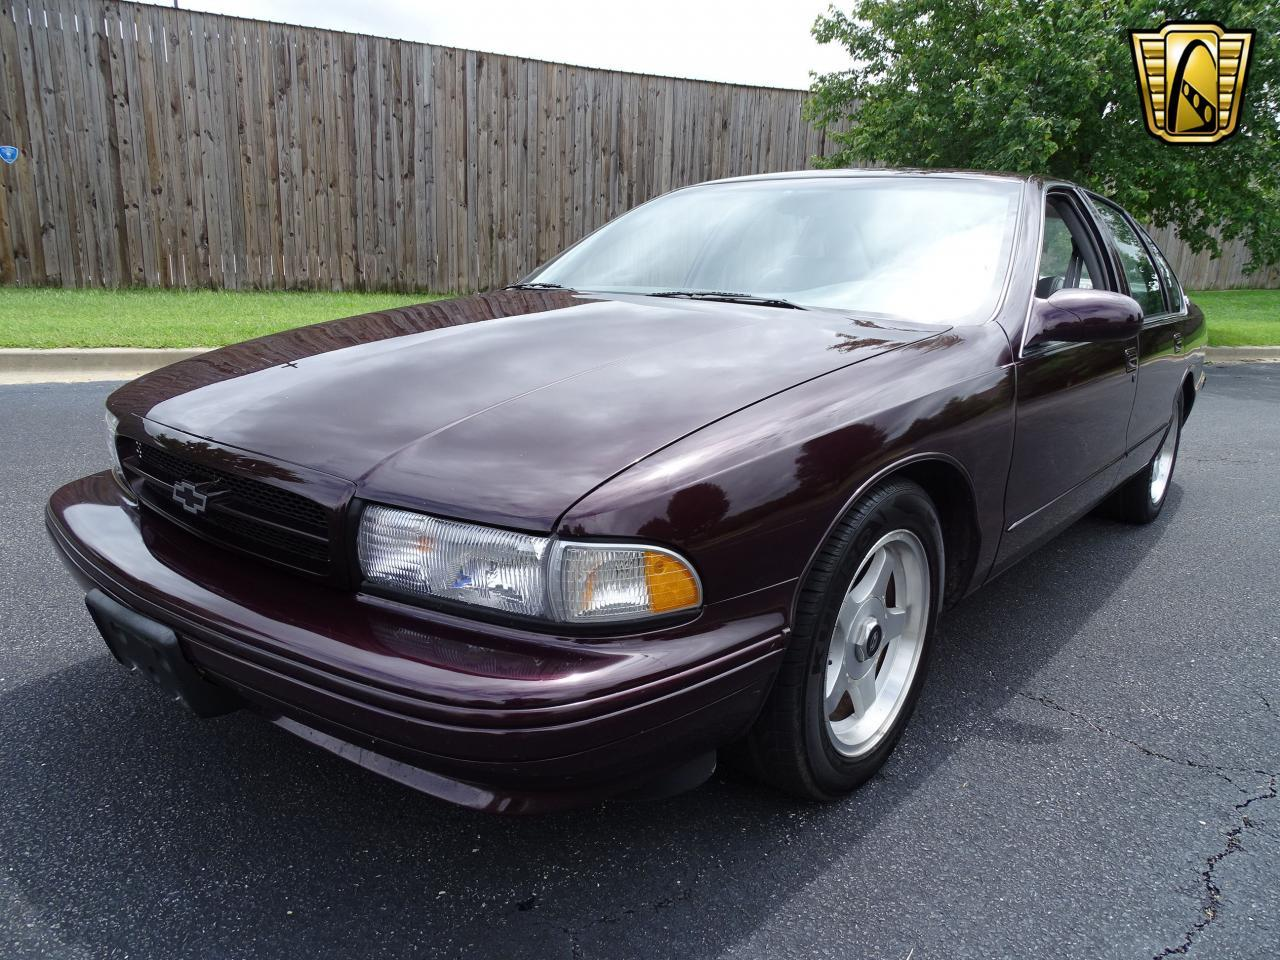 Large Picture of 1996 Impala - $19,000.00 Offered by Gateway Classic Cars - St. Louis - QB5K